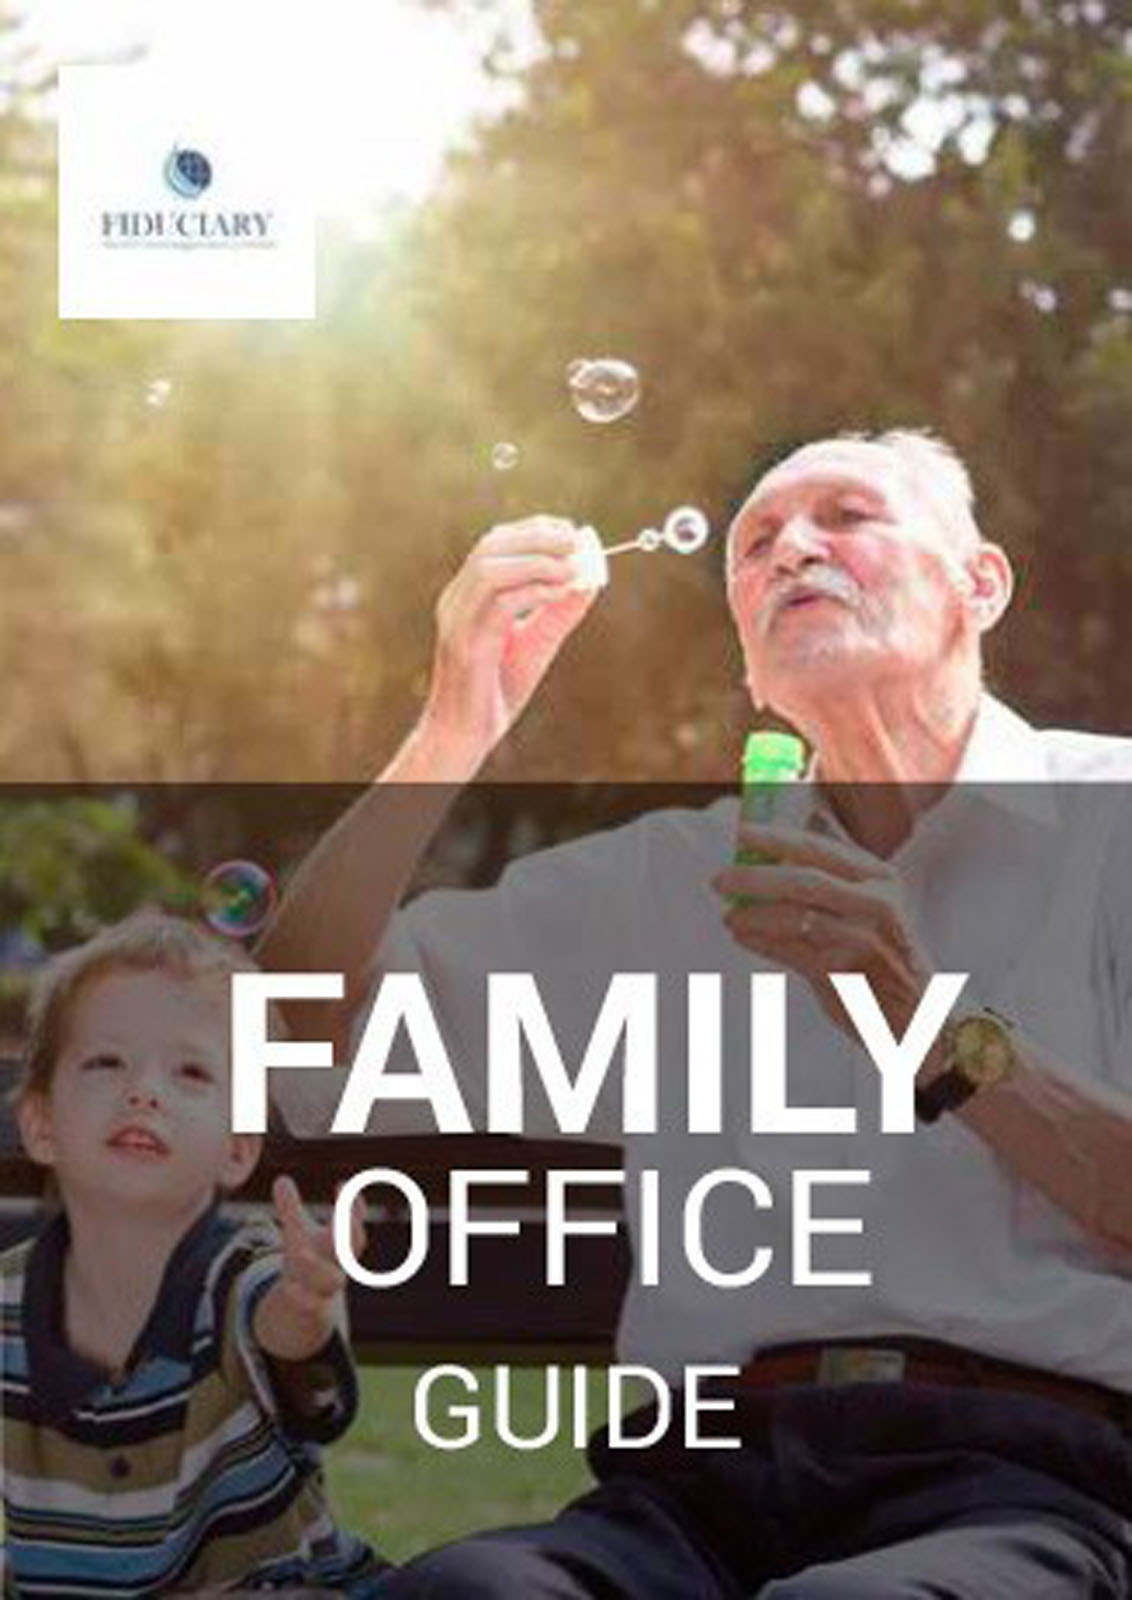 Family Office Guide Image